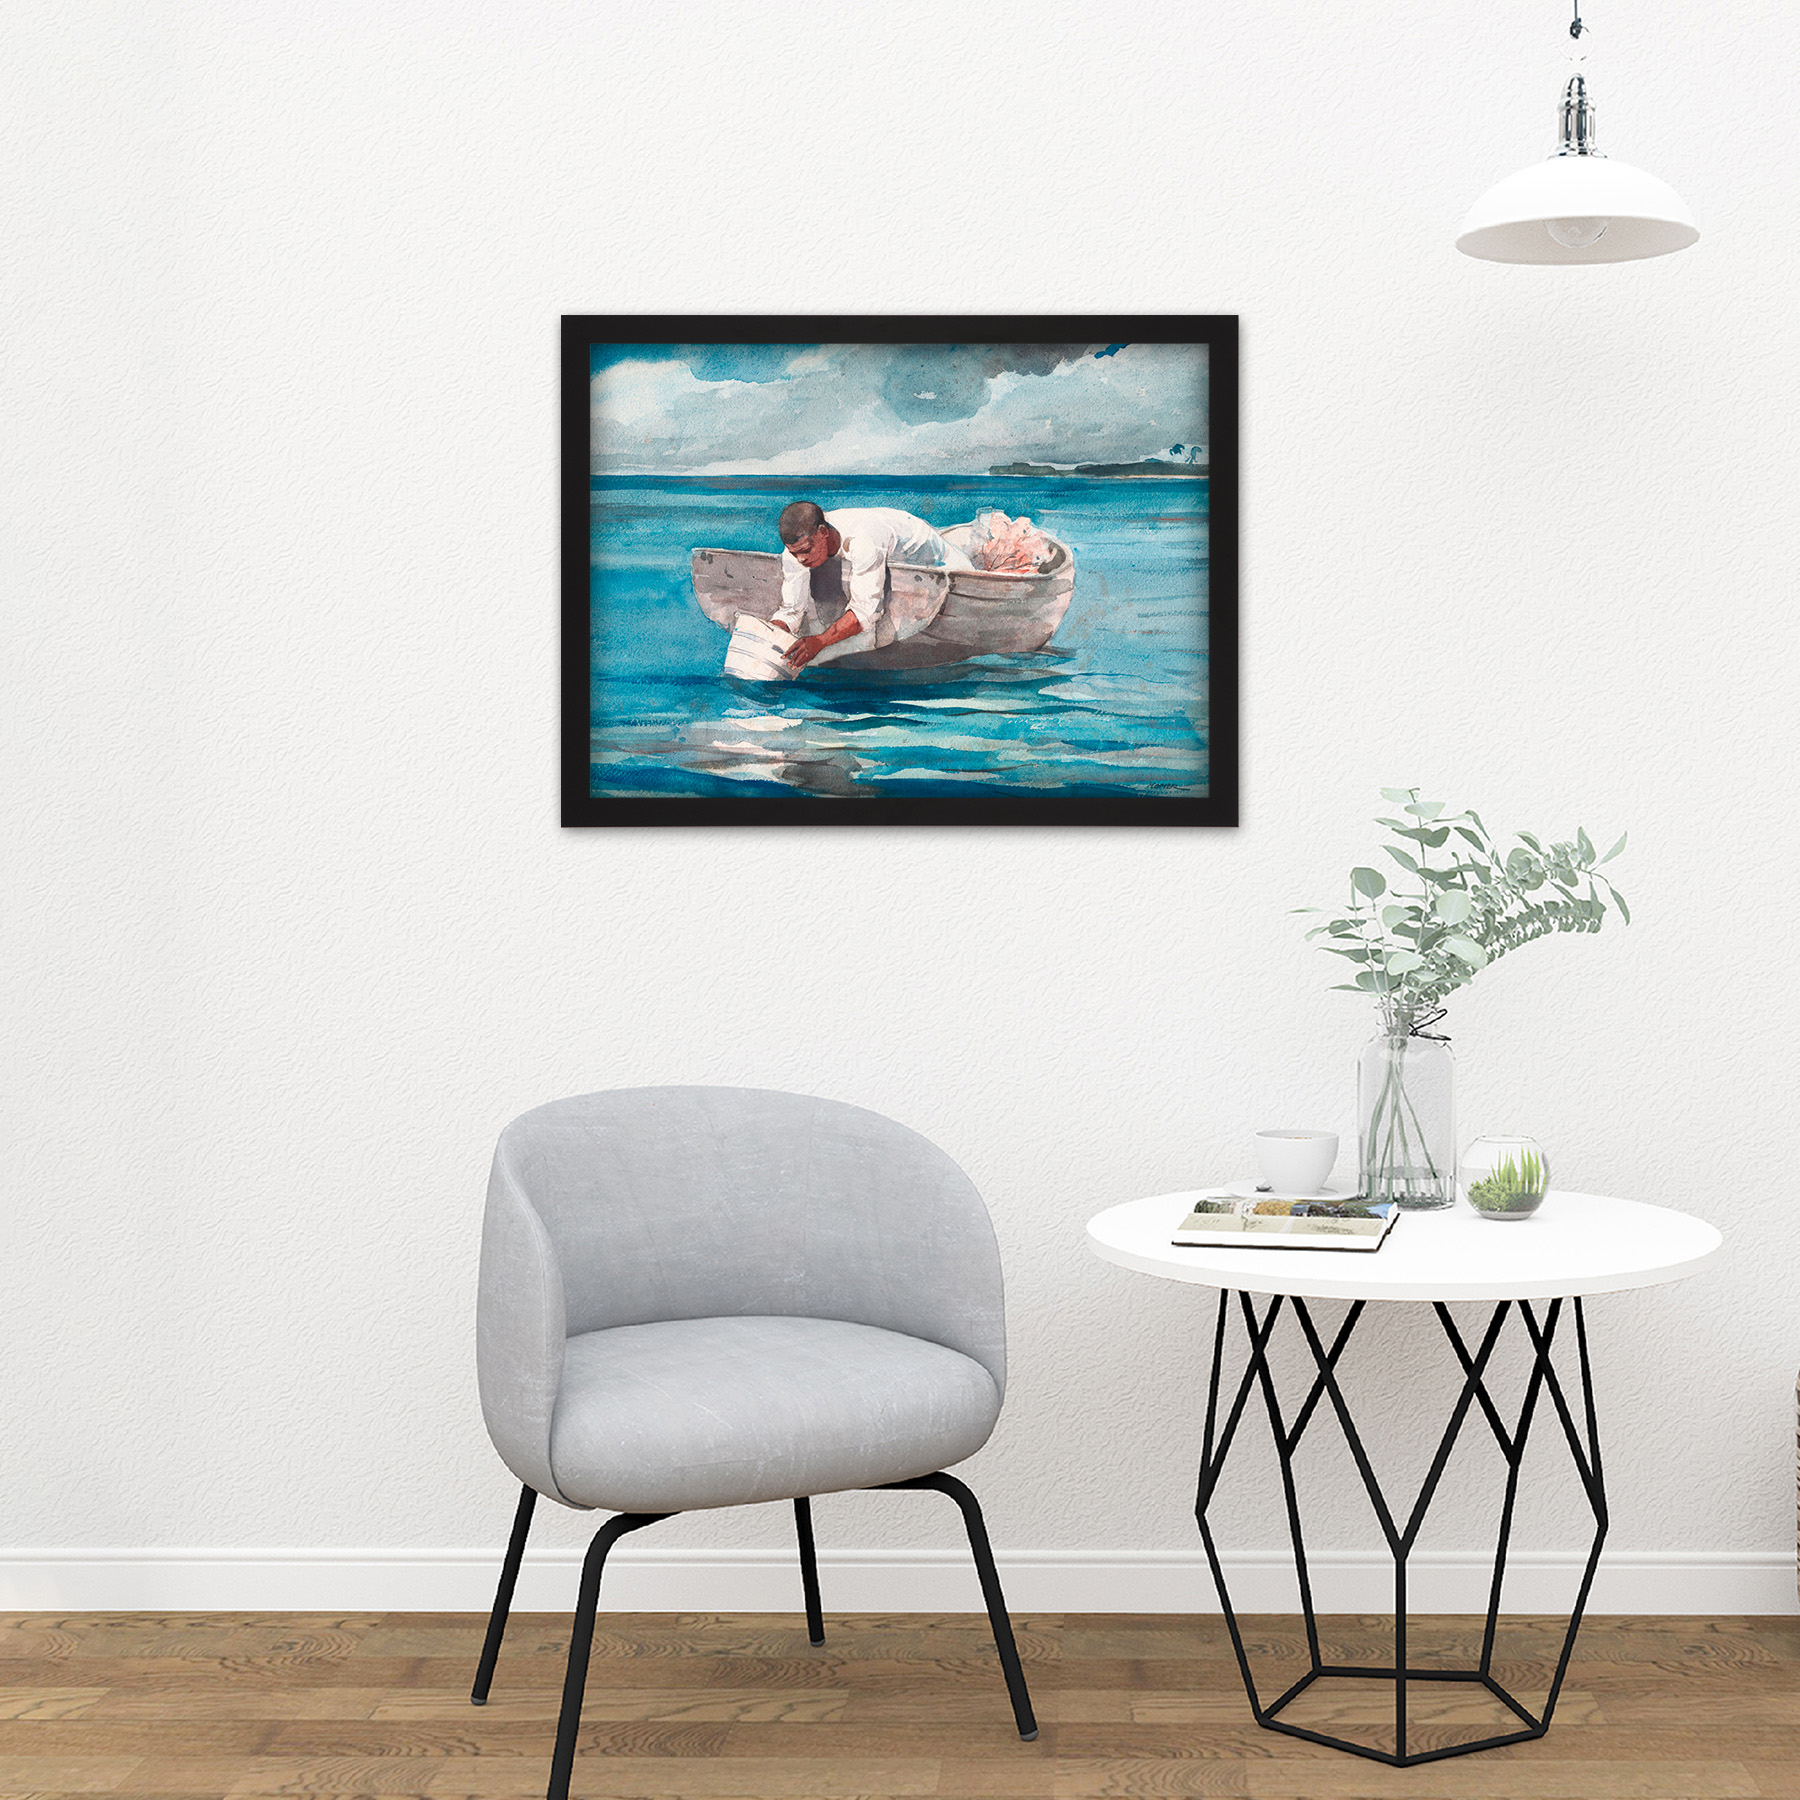 Homer-The-Water-Fan-Boat-Sea-Blue-Painting-Large-Framed-Art-Print thumbnail 8